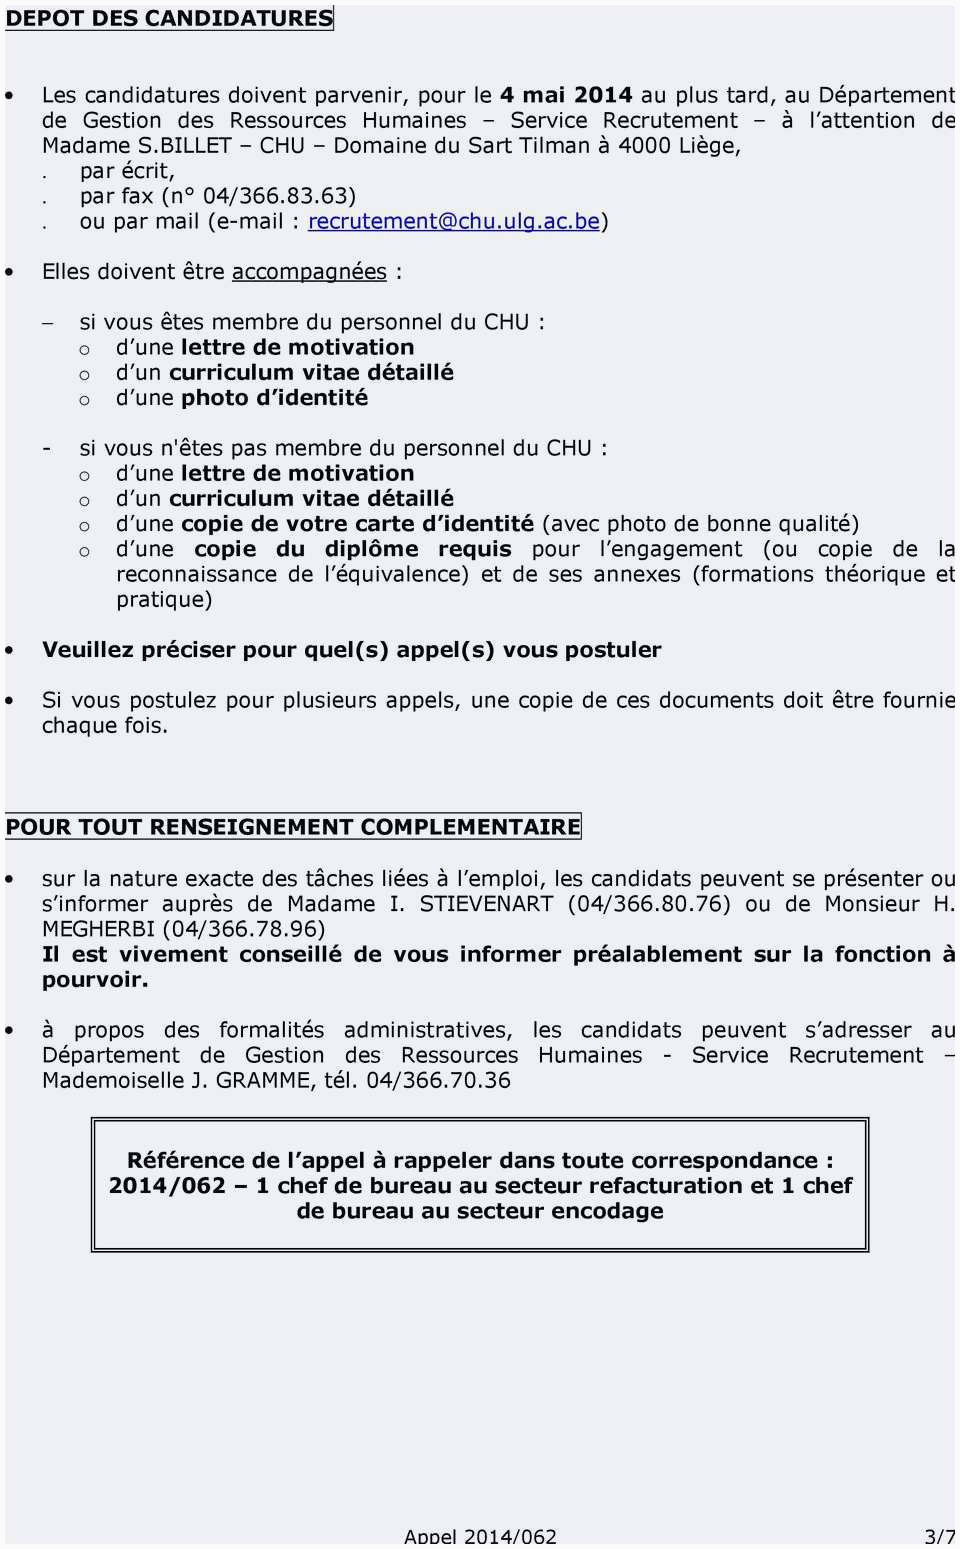 Lettre De Motivation Bts assistant De Gestion Exemple Lettre De Motivation Ccas Modele Cv assistant Ptable